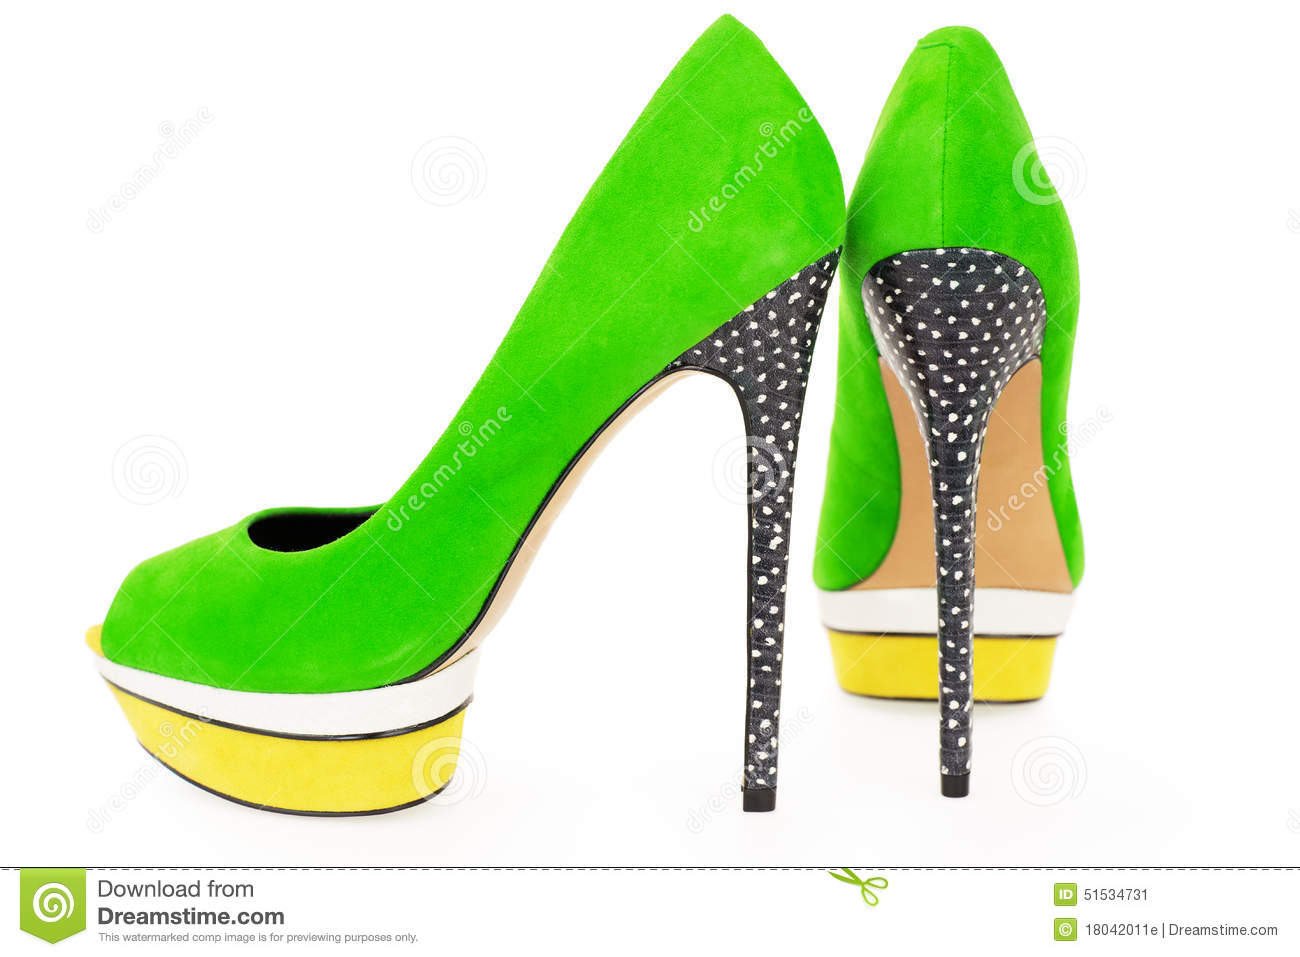 f3ba5552254 Pare Of Bright Green And Yellow High Heel Shoes On Whit Stock Image ...